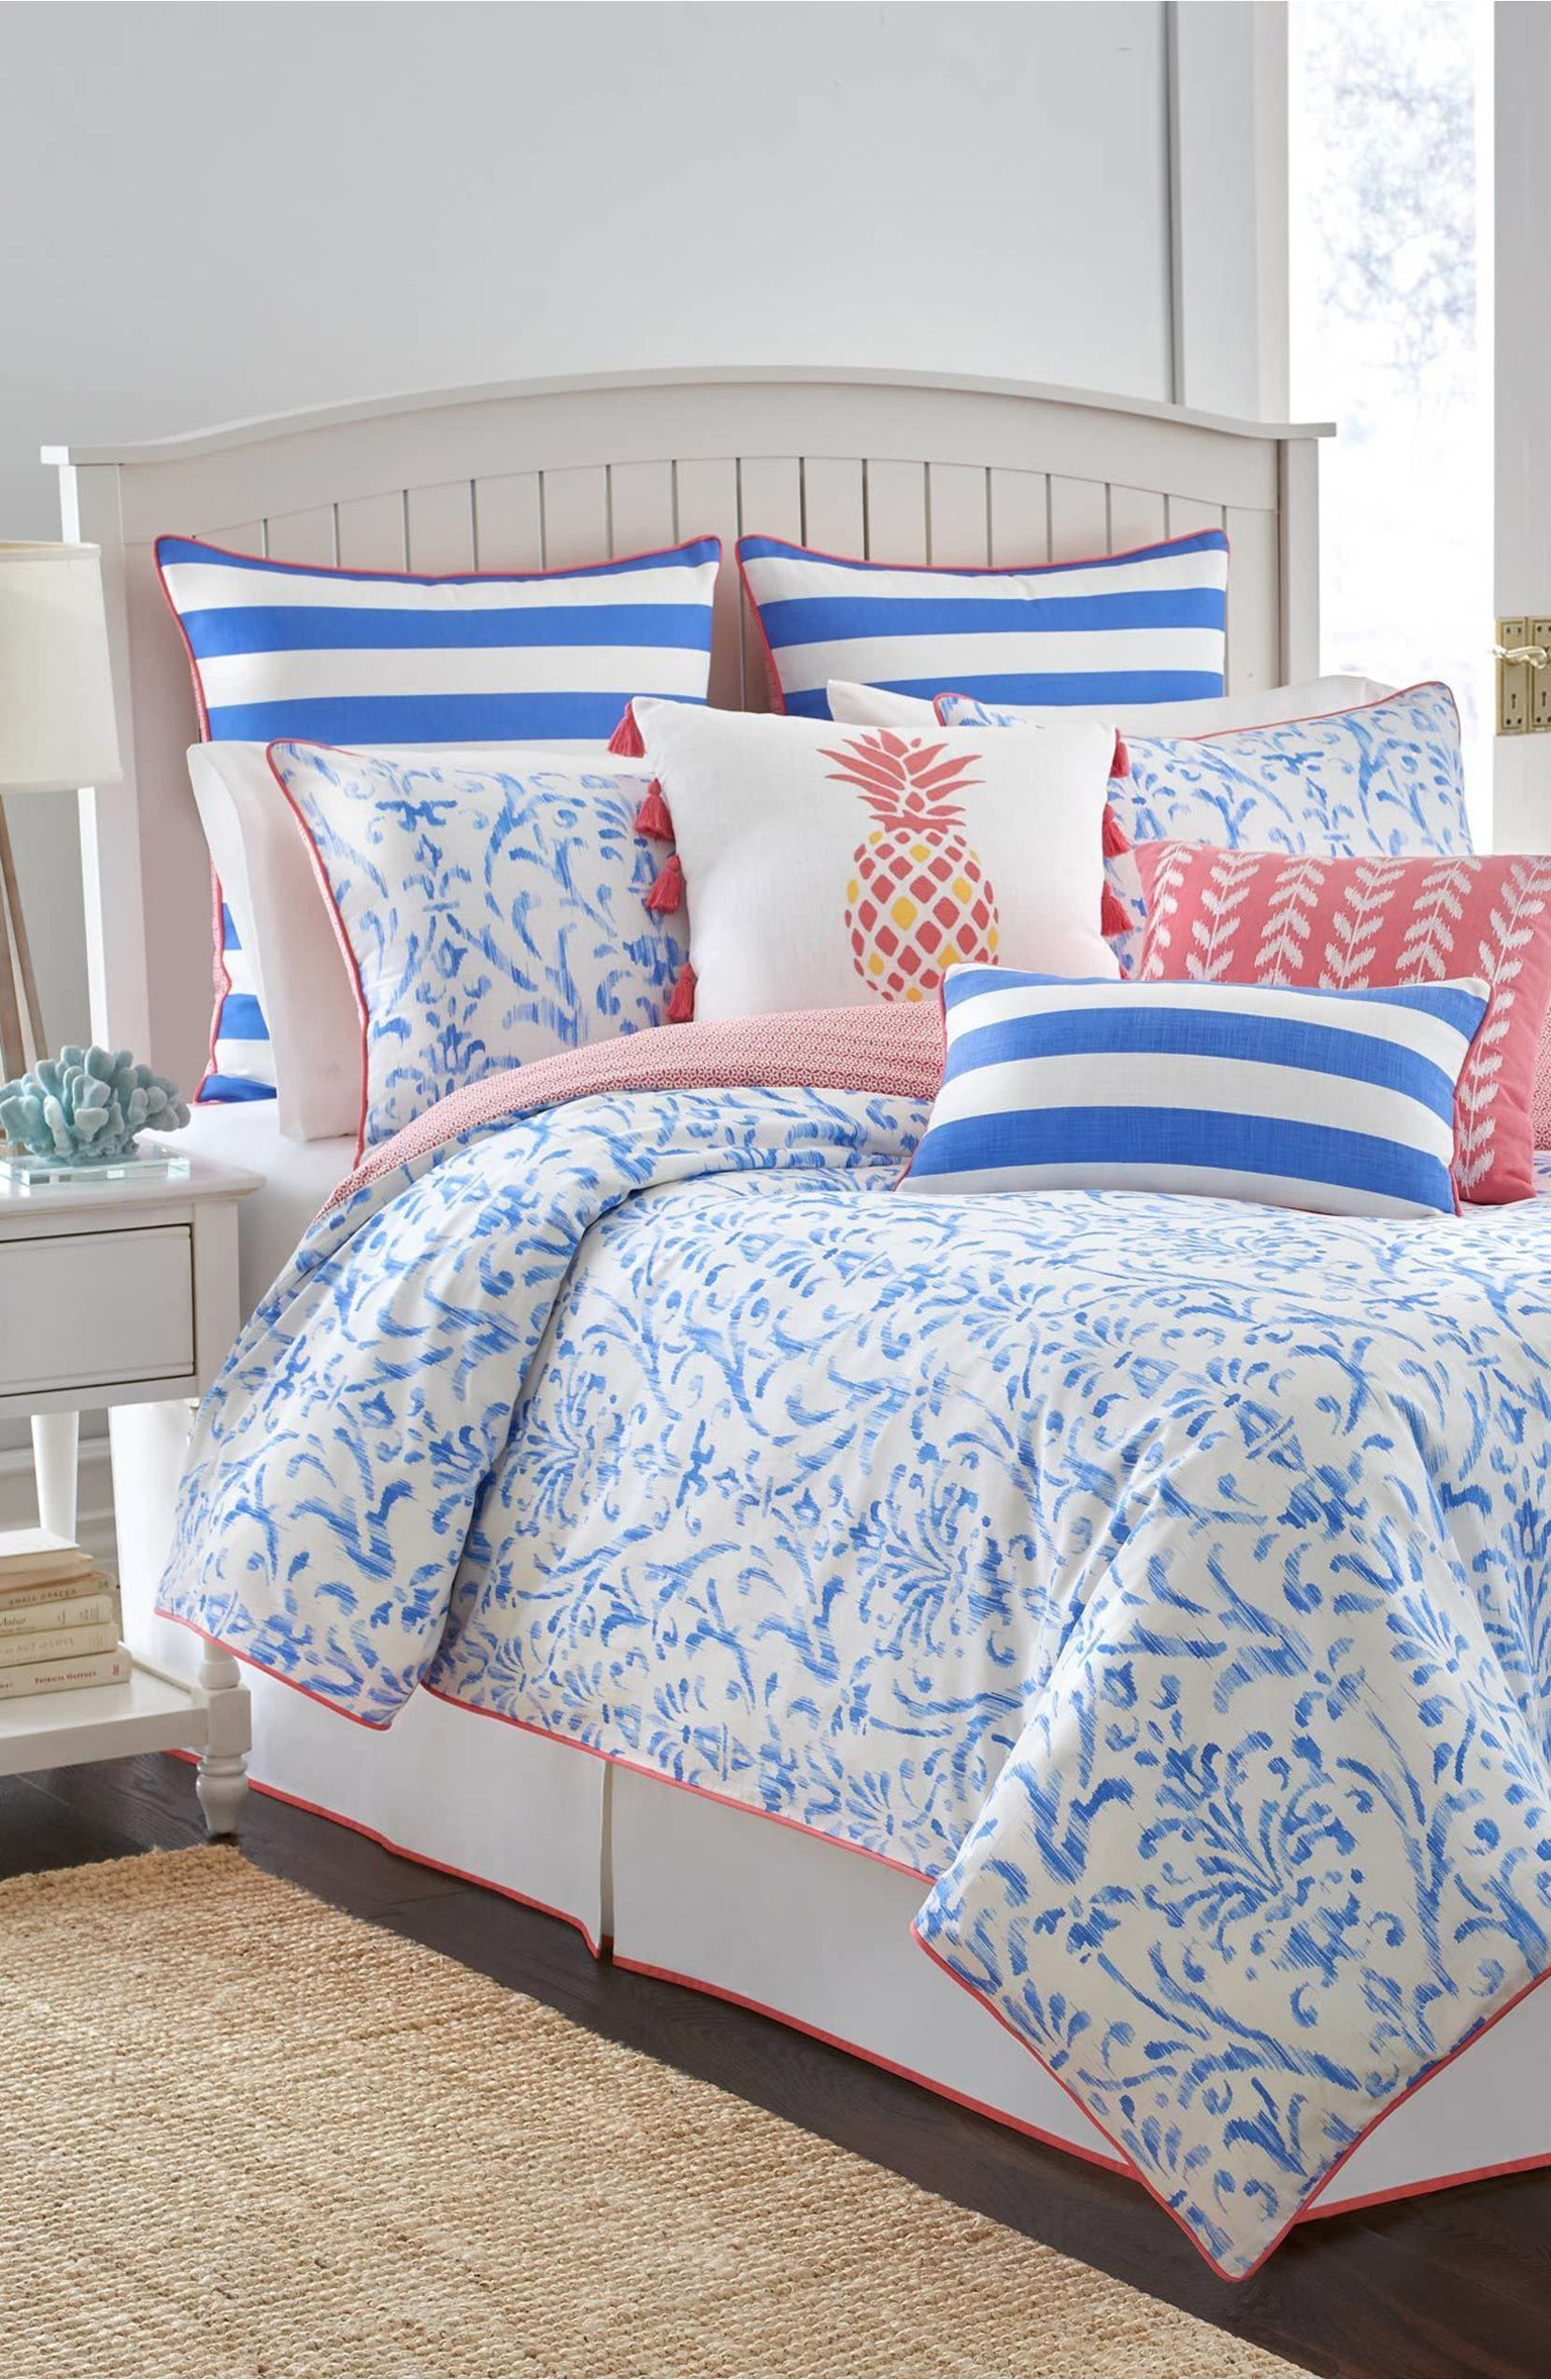 set care field subcat instruction overstock comforter southern for teen kyoto piece tide bath wash machine less brand seventeen sets bedding dorm